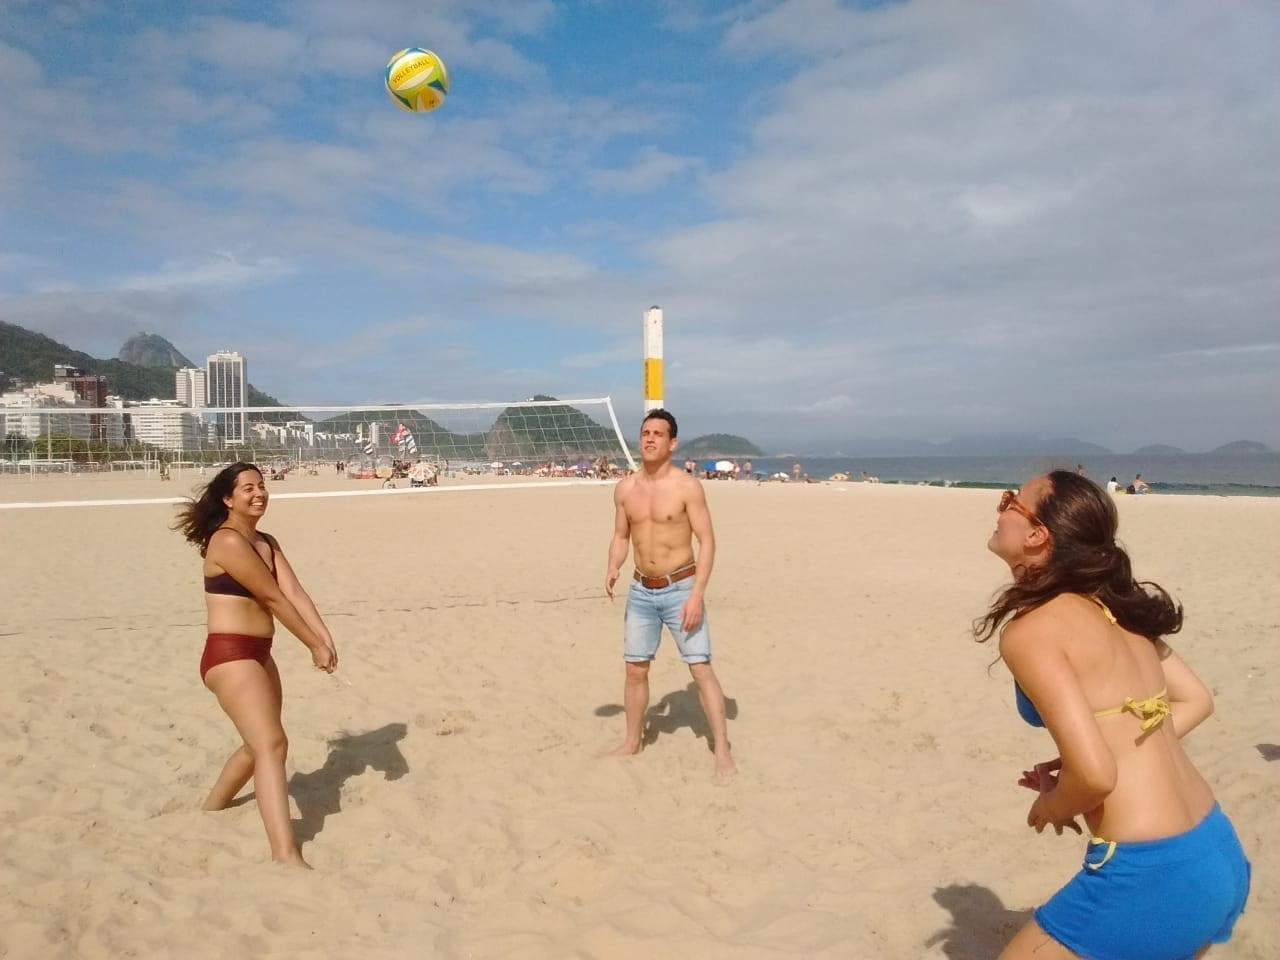 Getting a golden tan playing beachvolley in the sands of Copacabana